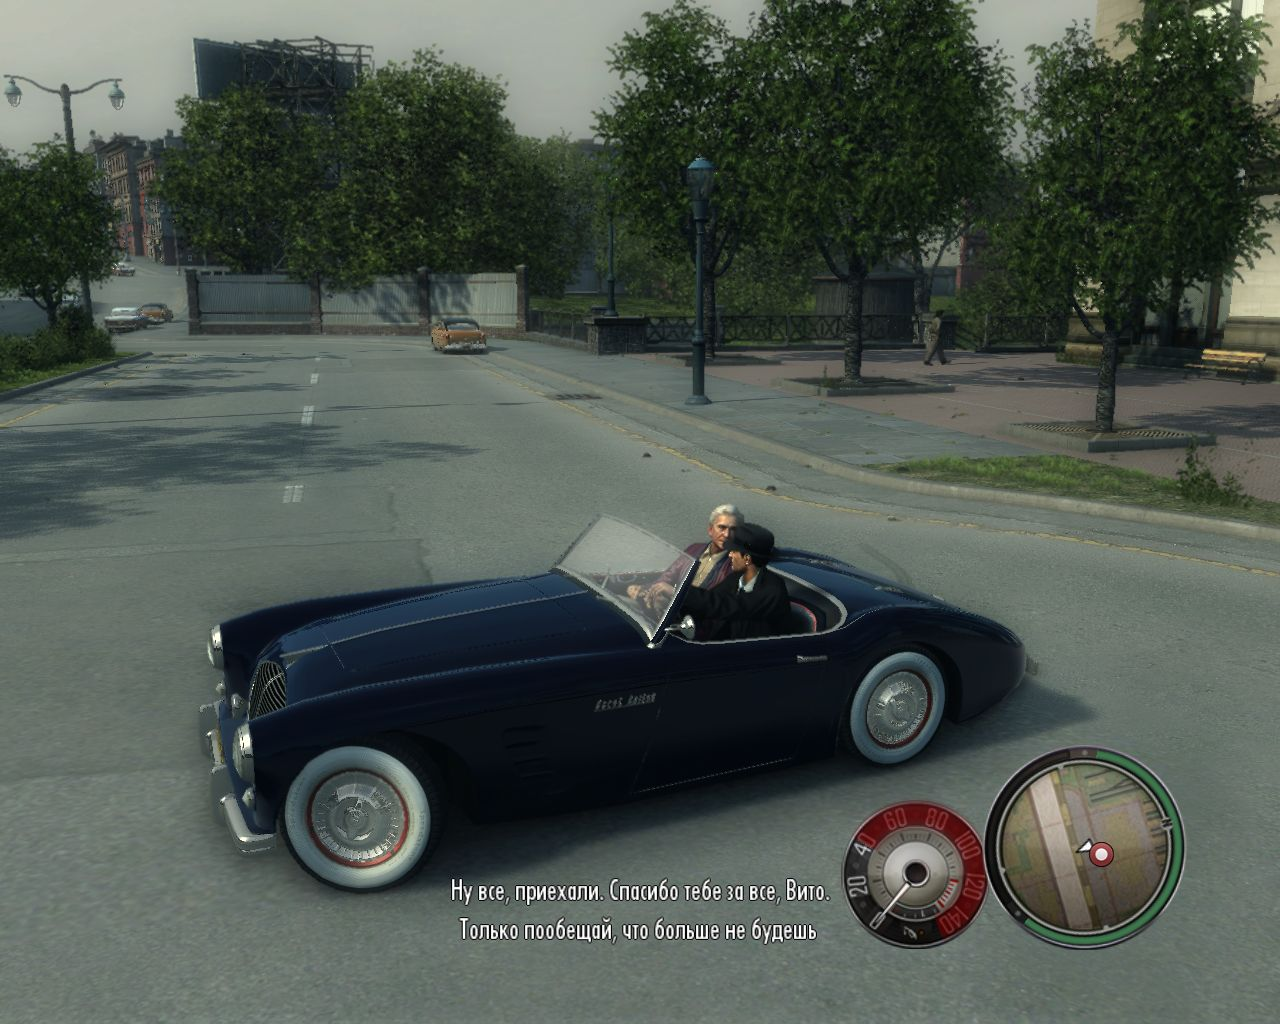 Mafia ii is a beautifully crafted look into the dark and unforgiving world of the mafia